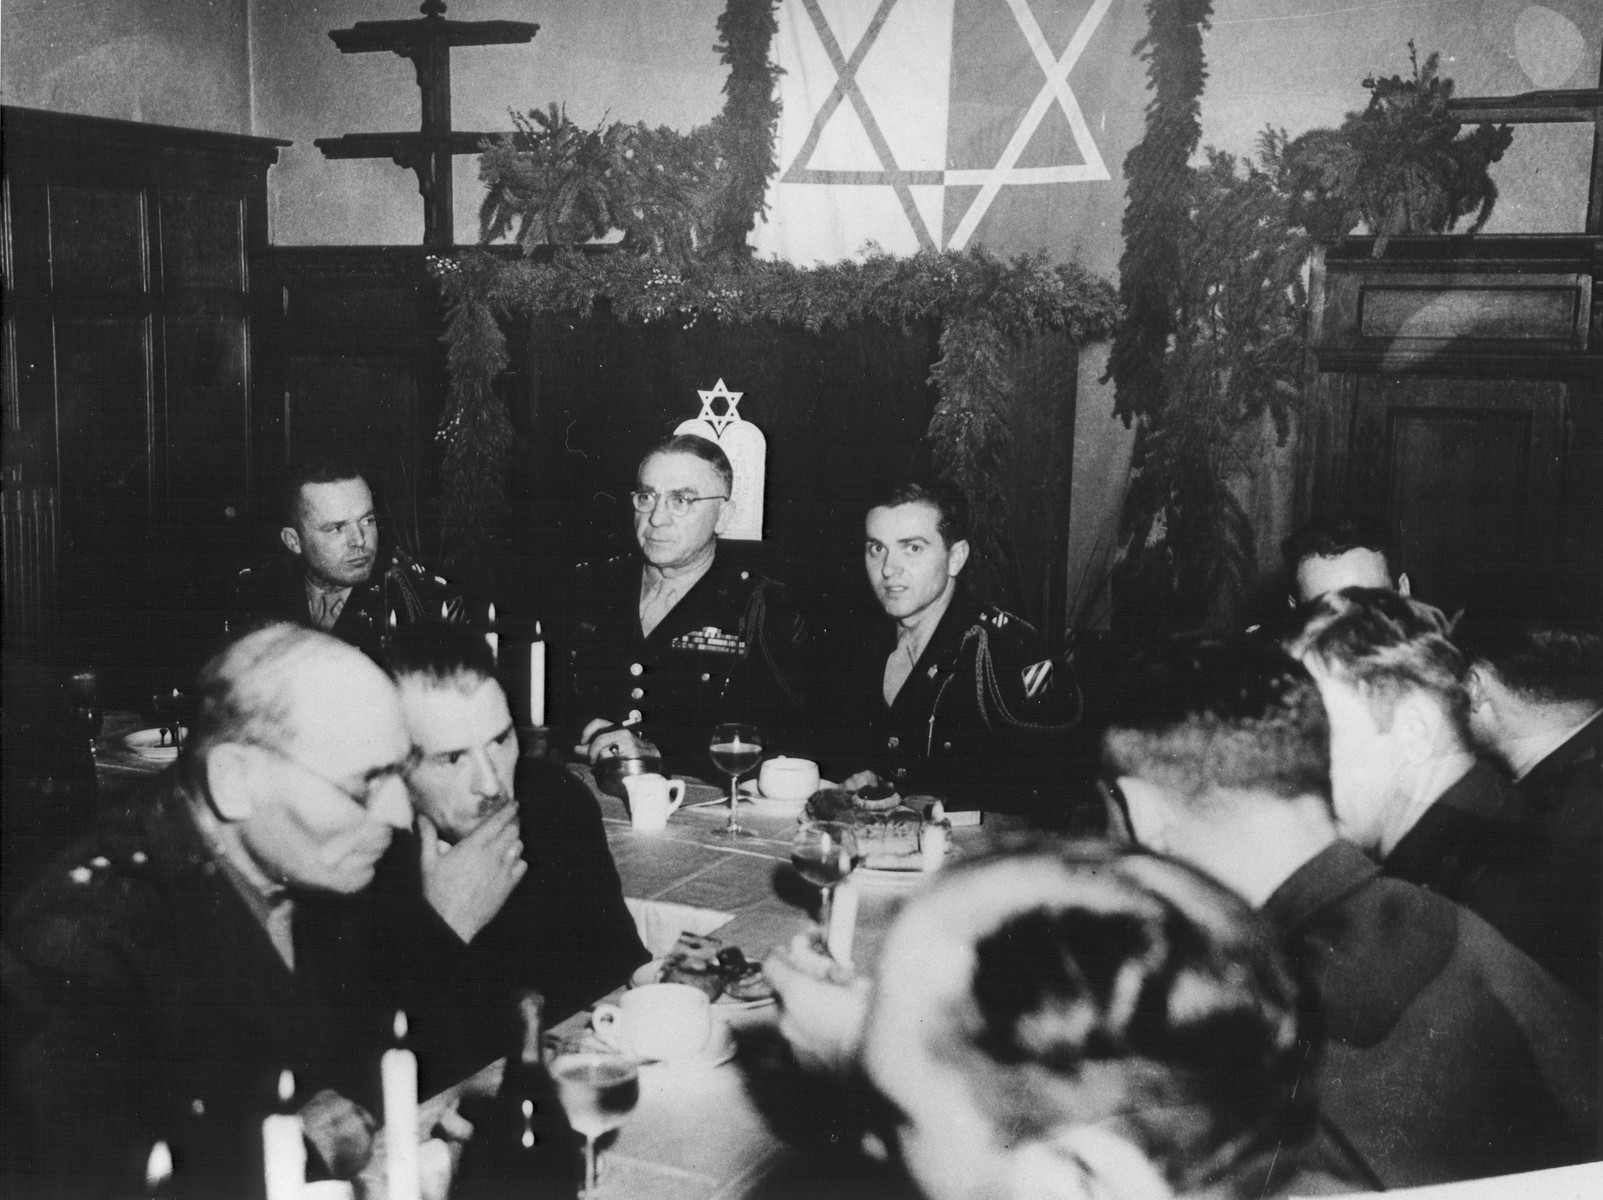 Major General Frank T. Schmidt (C.G. 3rd Division) and U.S. Army chaplain Rabbi Mayer Abramowitz attend a reception during the rededication of the Marburg synagogue.    The previous synagogue was destroyed during Kristallnacht.  Major General Frank T. Schmidt (back table, center), and Mayer Abramowitz (back table, third from the left).